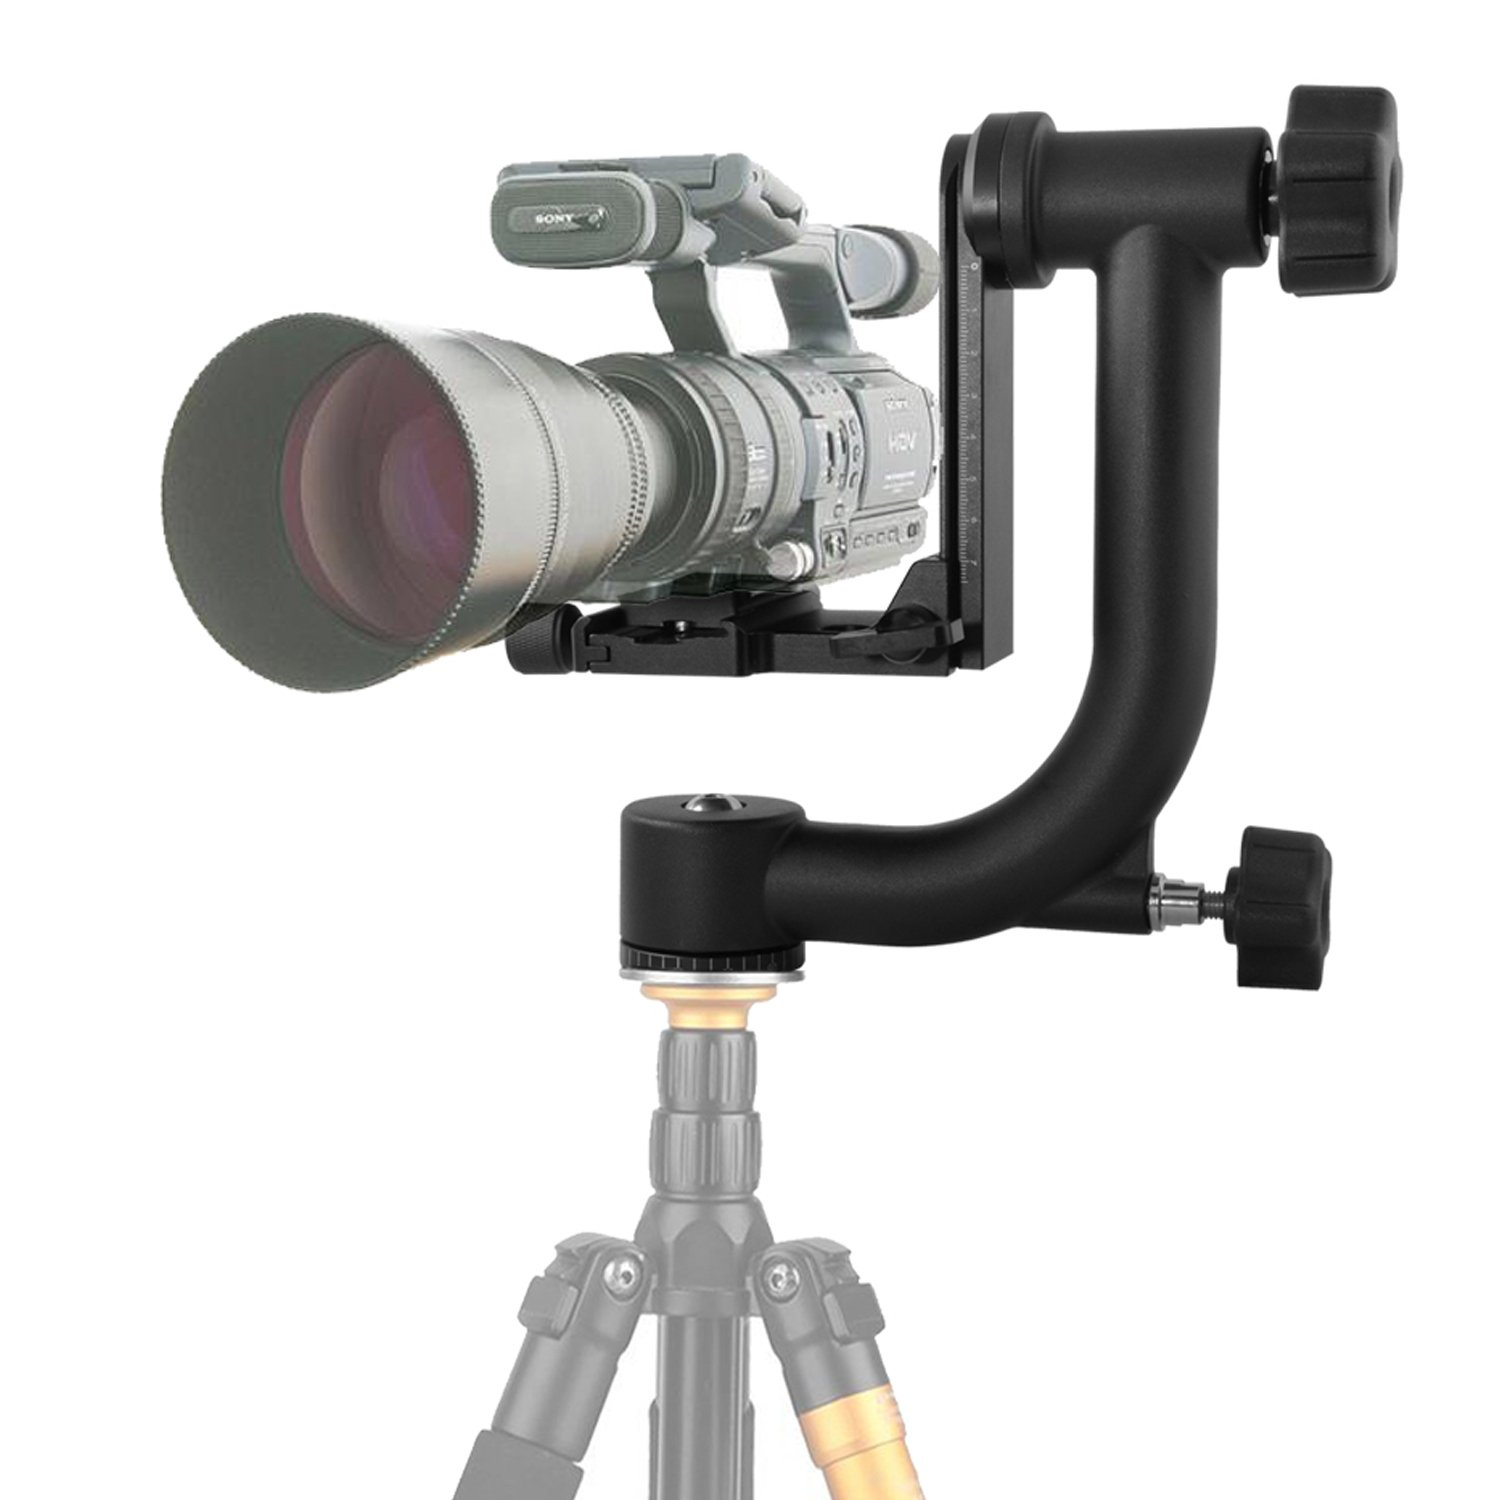 pangshi Professional Gimbal Tripod Head with Arca-Swiss Quick-Release Plate